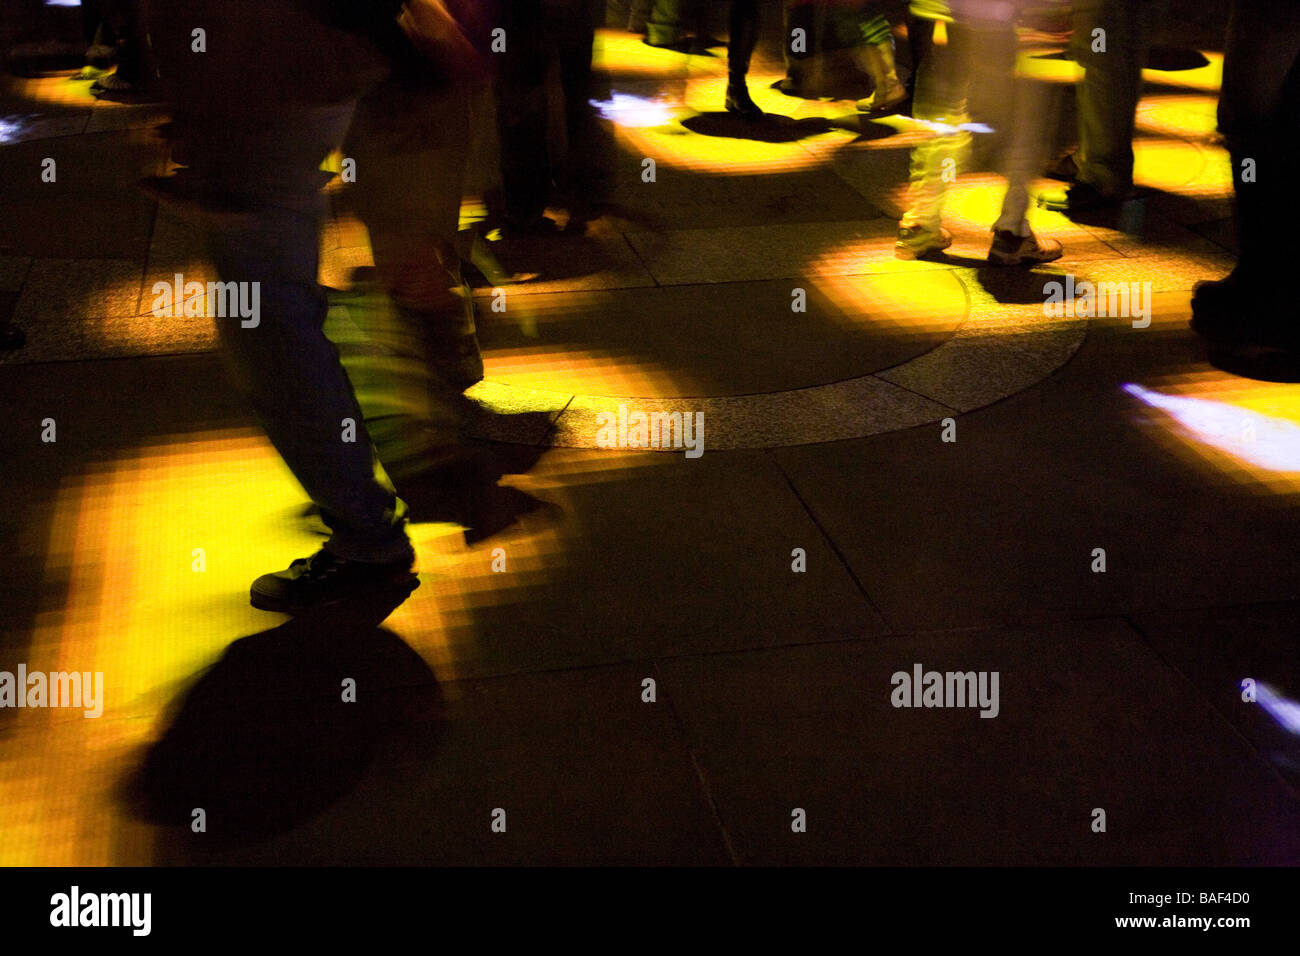 Disco Dance Floor Stock Photos Amp Disco Dance Floor Stock